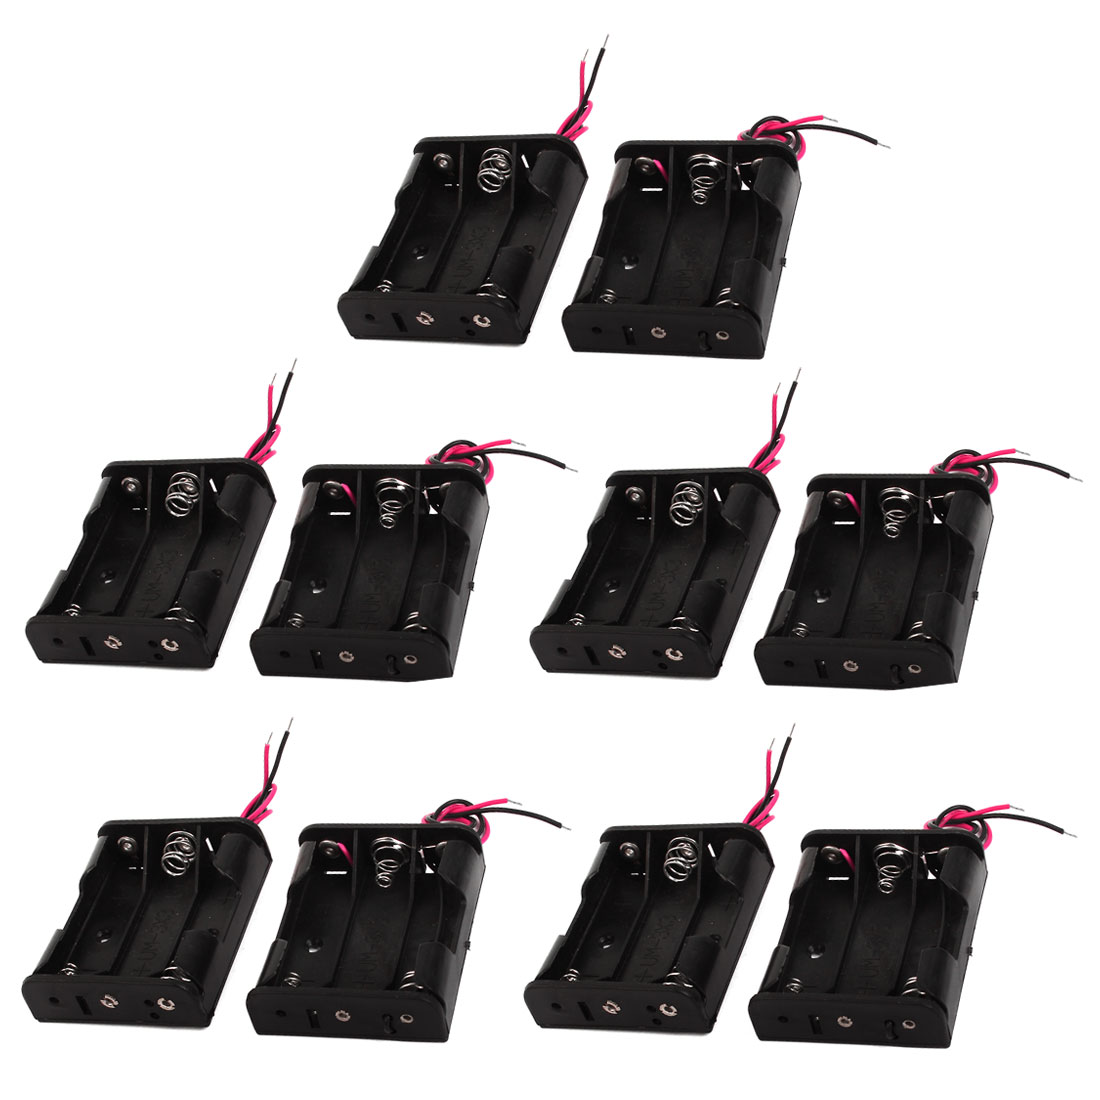 10pcs Spring Clip Black Plastic Shell 3 x 1.5V AA Battery Box Case Holder